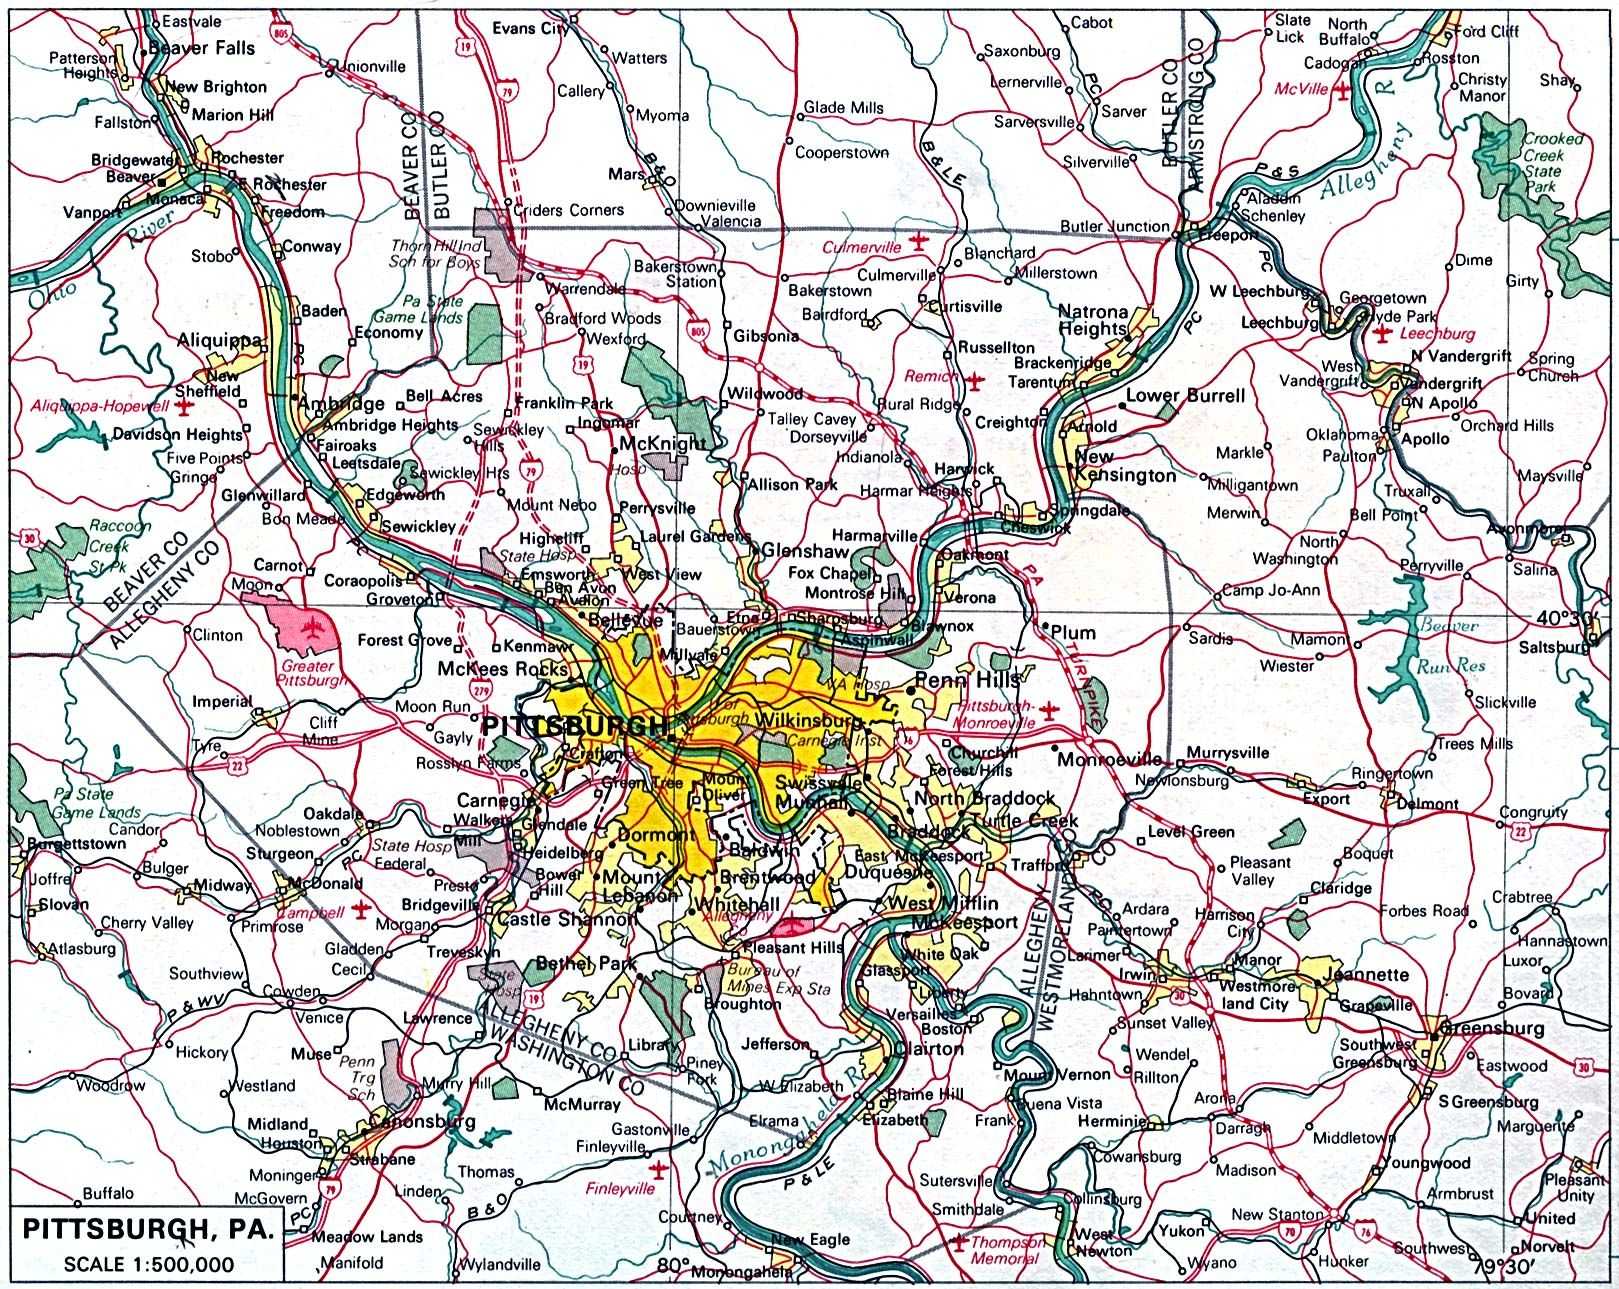 Pittsburgh City Map Pennsylvania United States Good luck